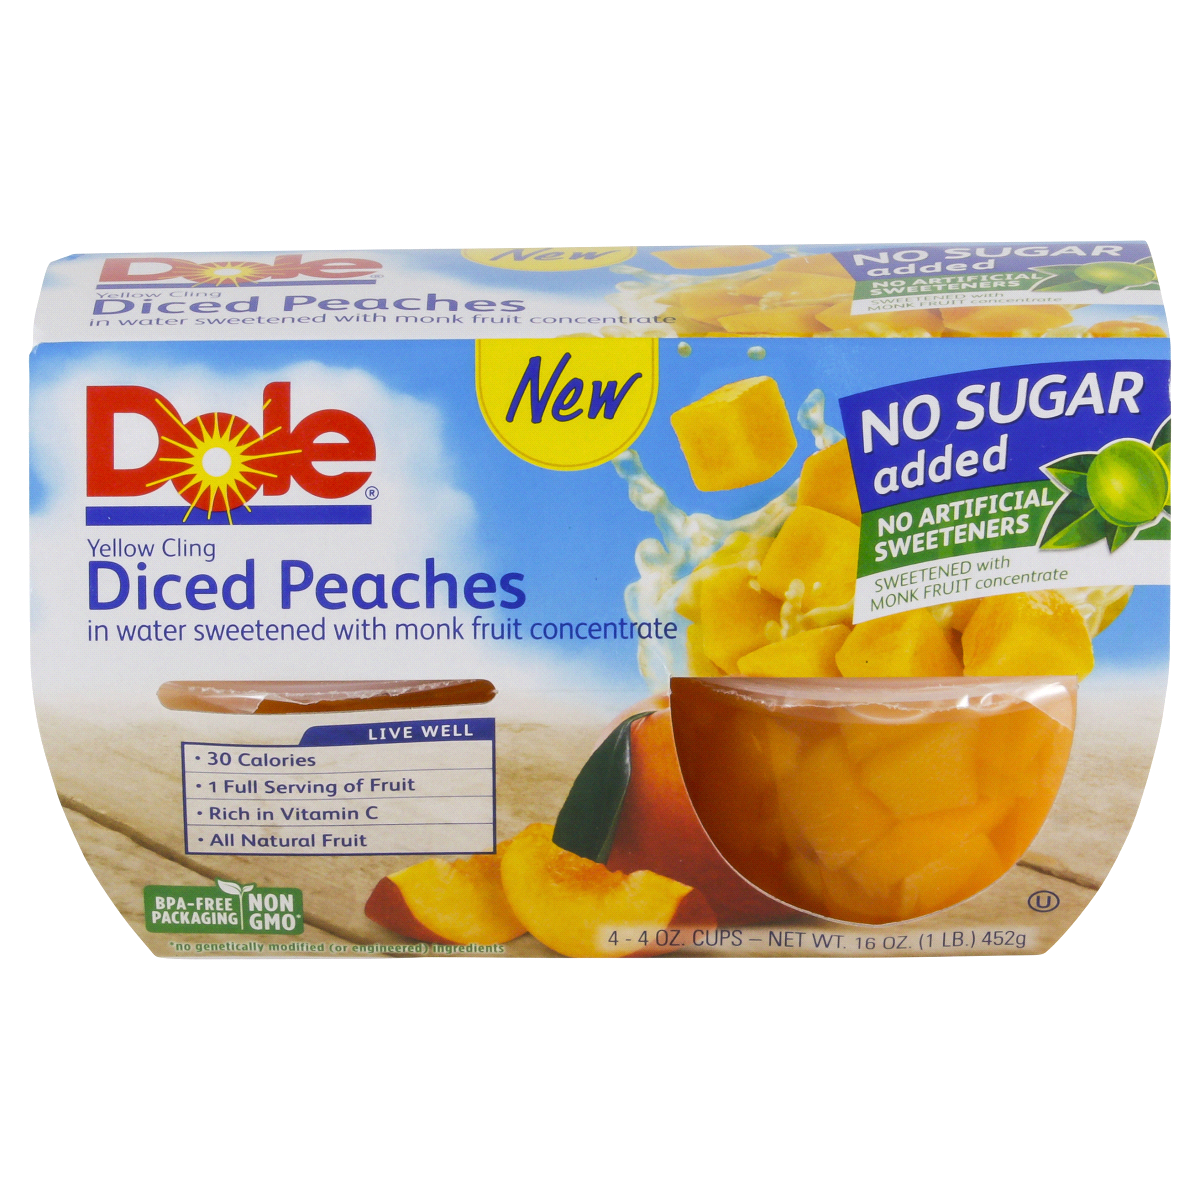 DOLE DICED PEACHES FRUIT BOWLS 4 OZ